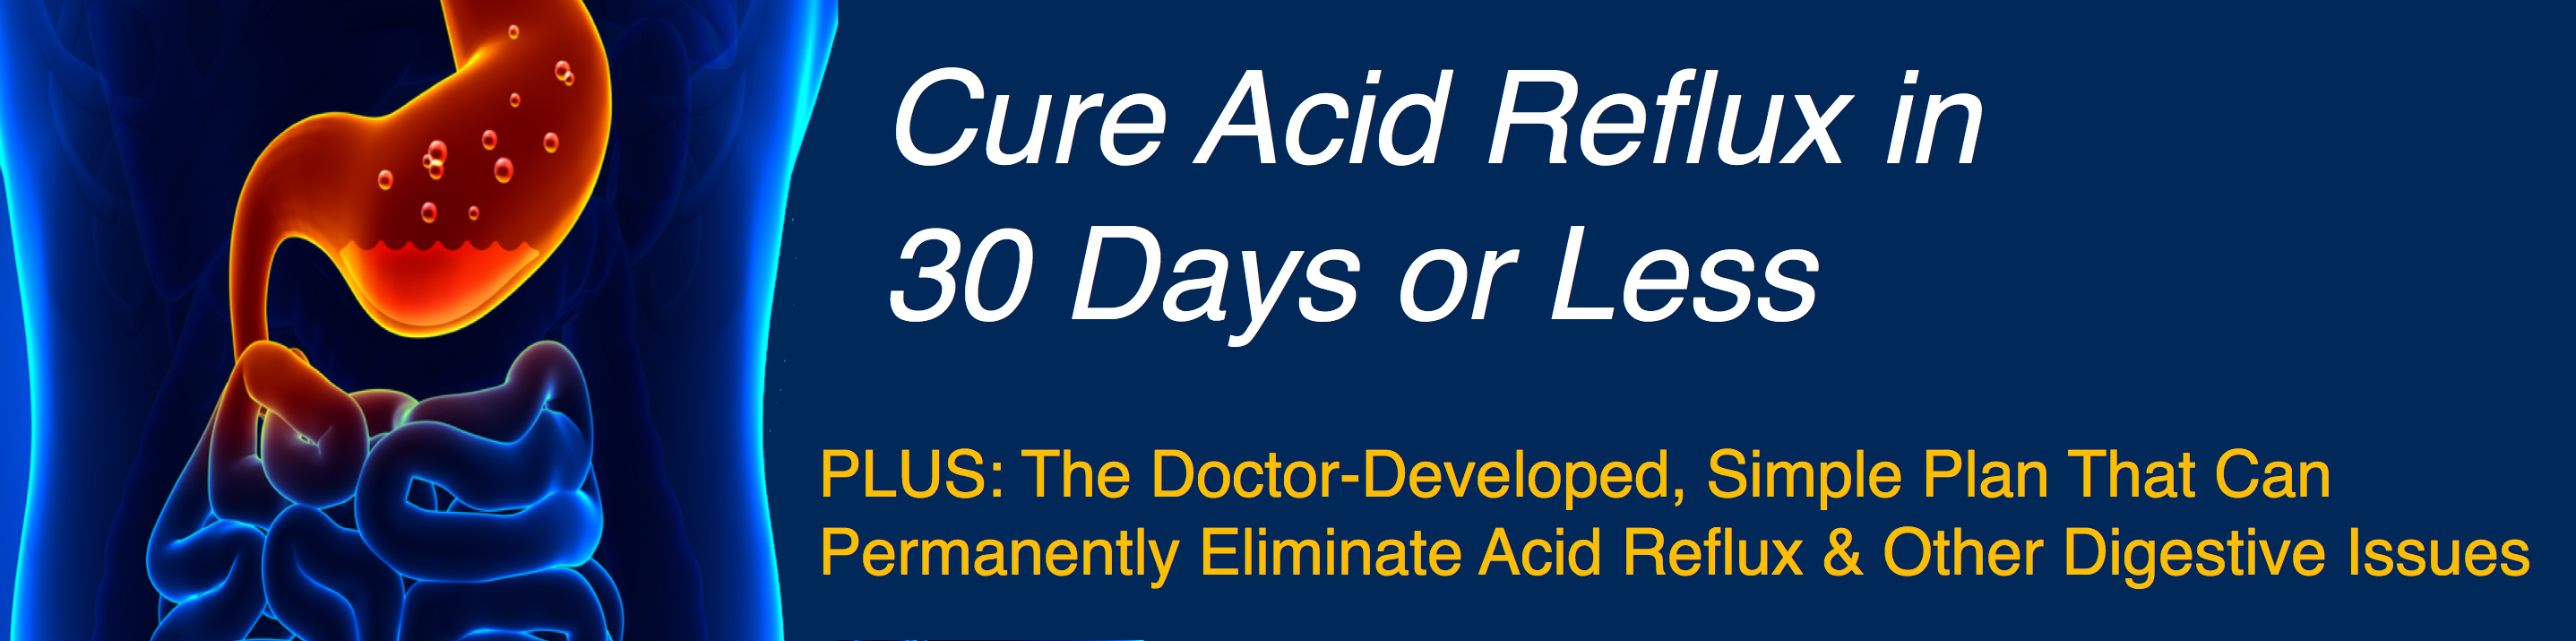 Cure Acid Reflux in 30 Days or Less